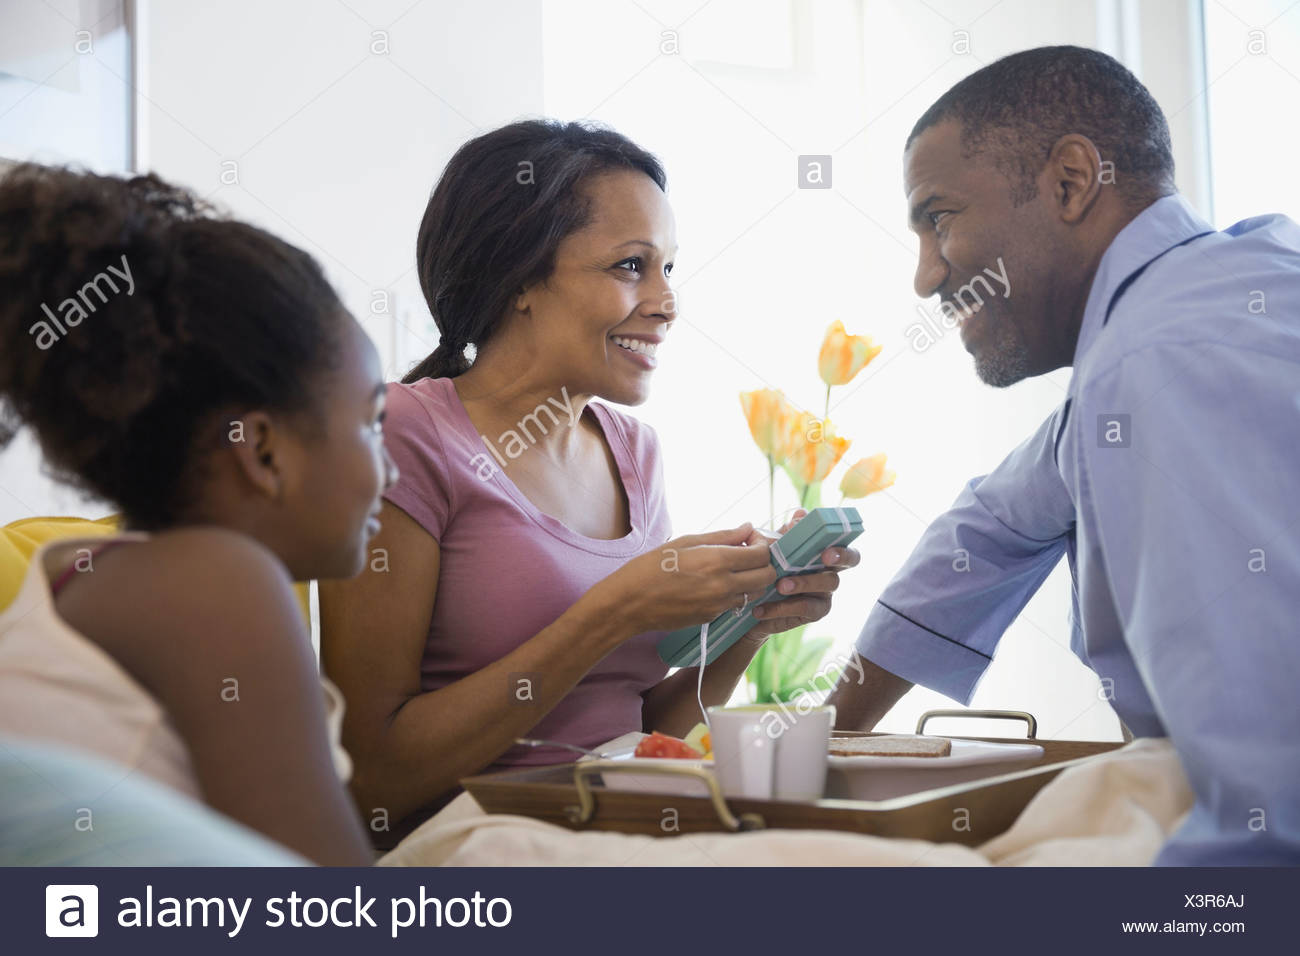 Woman opening birthday gift in bedroom - Stock Image